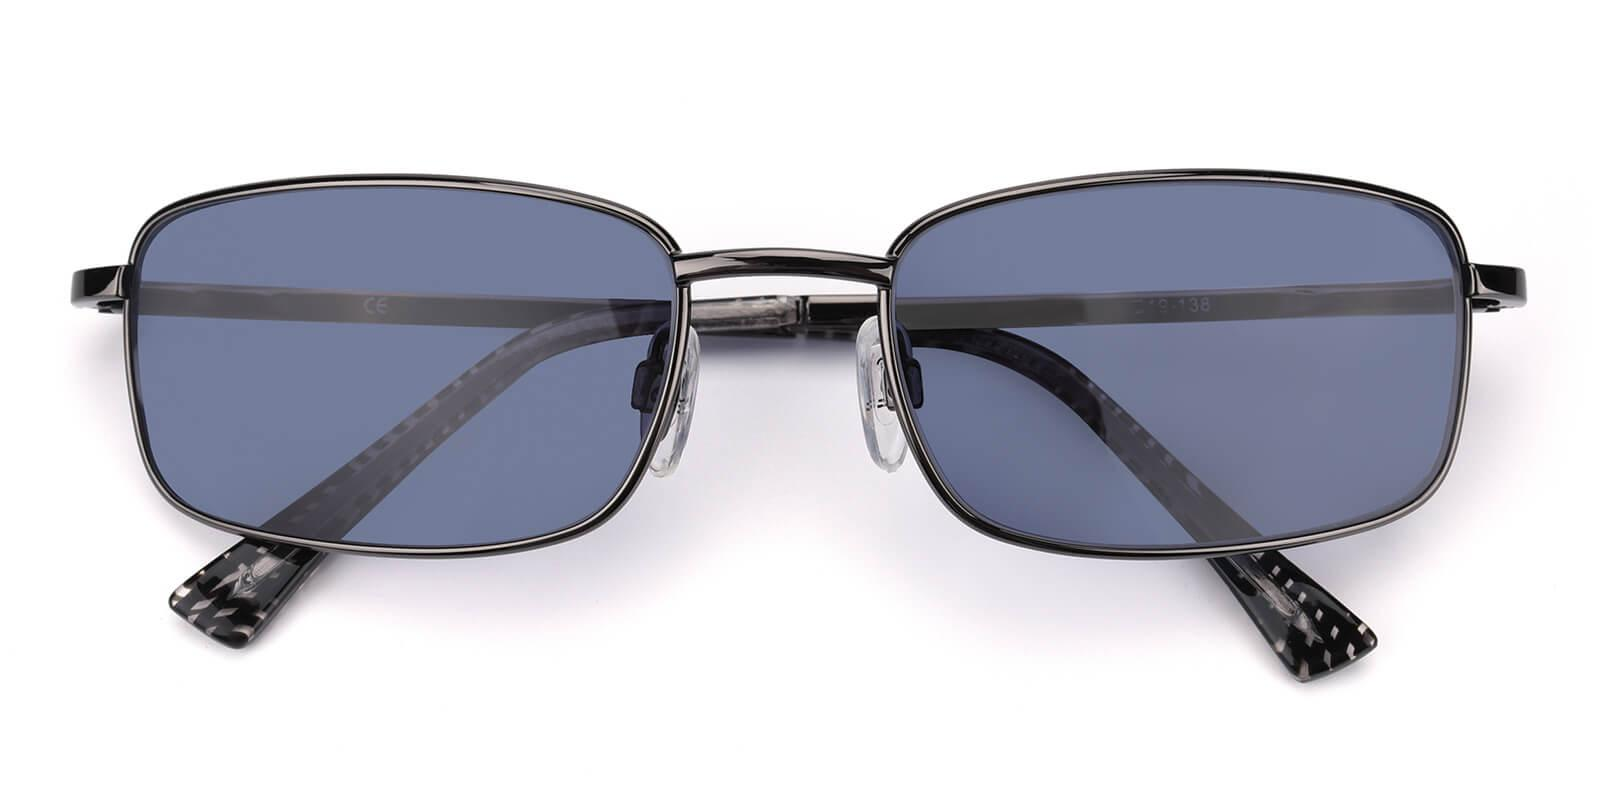 Cheynish-Gun-Rectangle-Metal-Sunglasses-detail